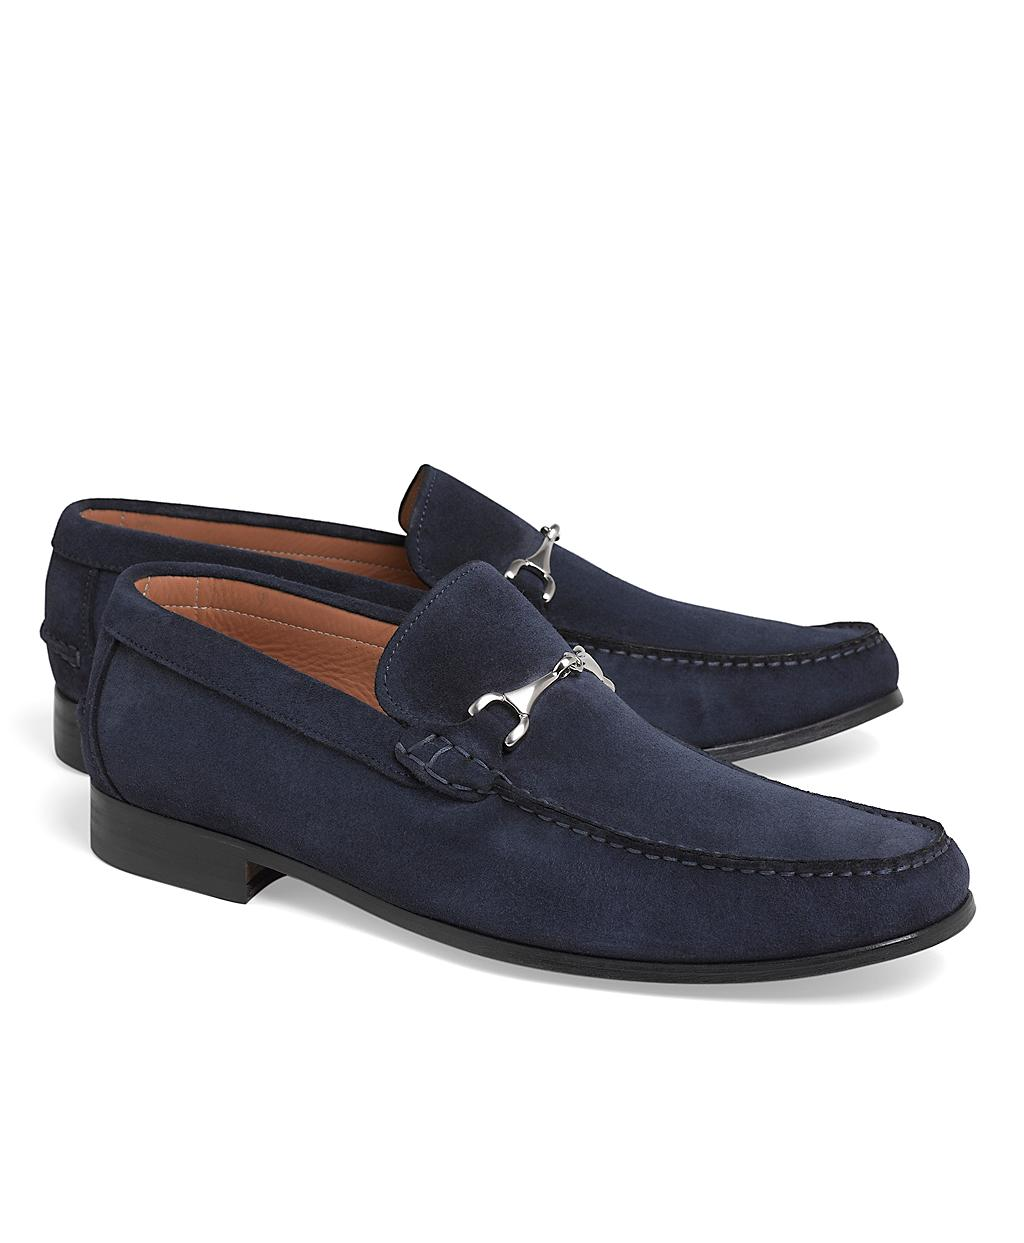 ff7f5d49754a8 Brooks Brothers Suede Buckle Loafers in Blue for Men - Lyst